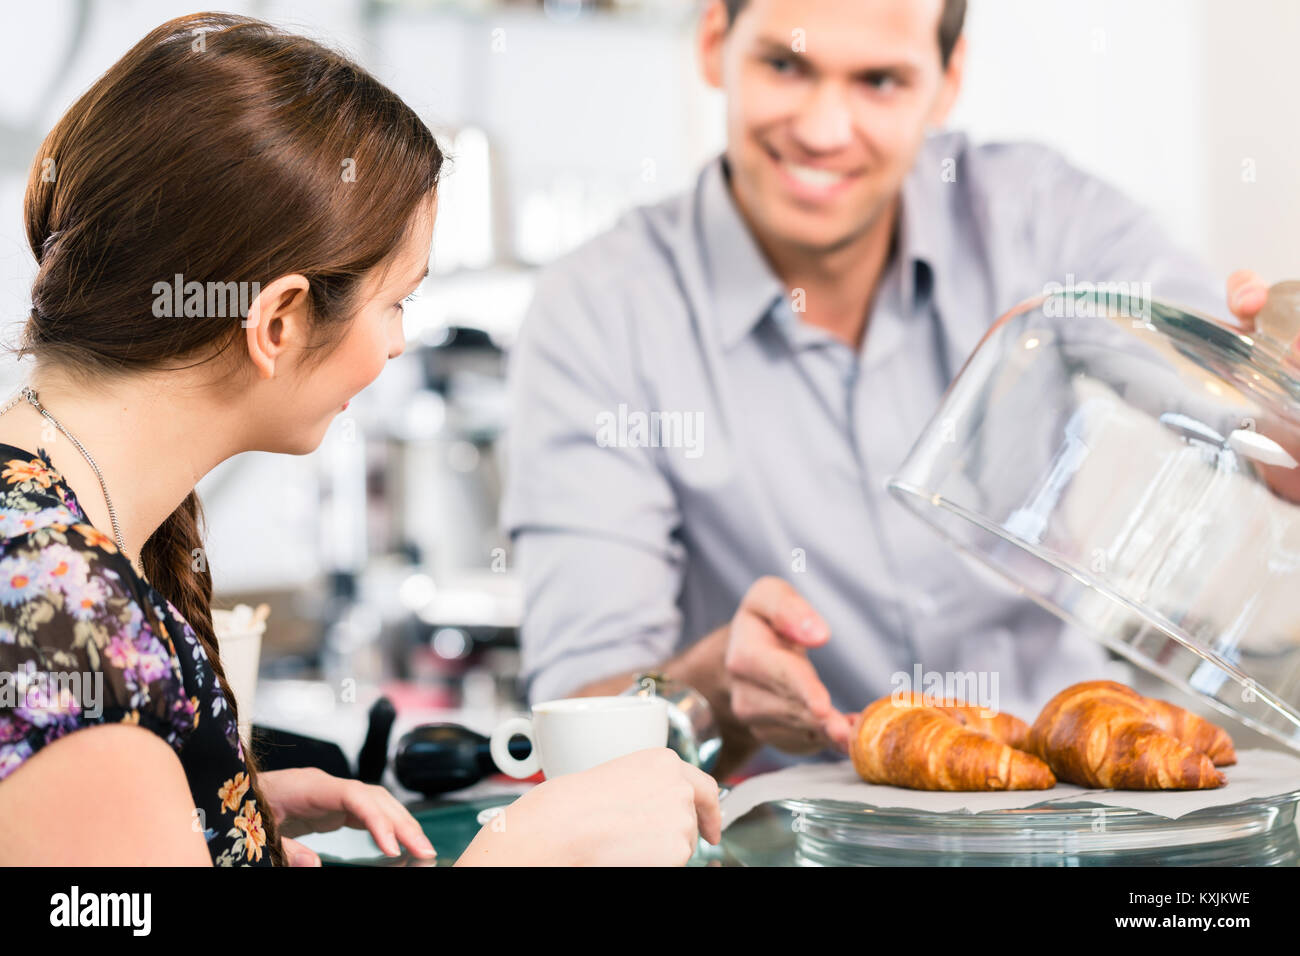 Friendly waiter offering to young female customer fresh French c - Stock Image